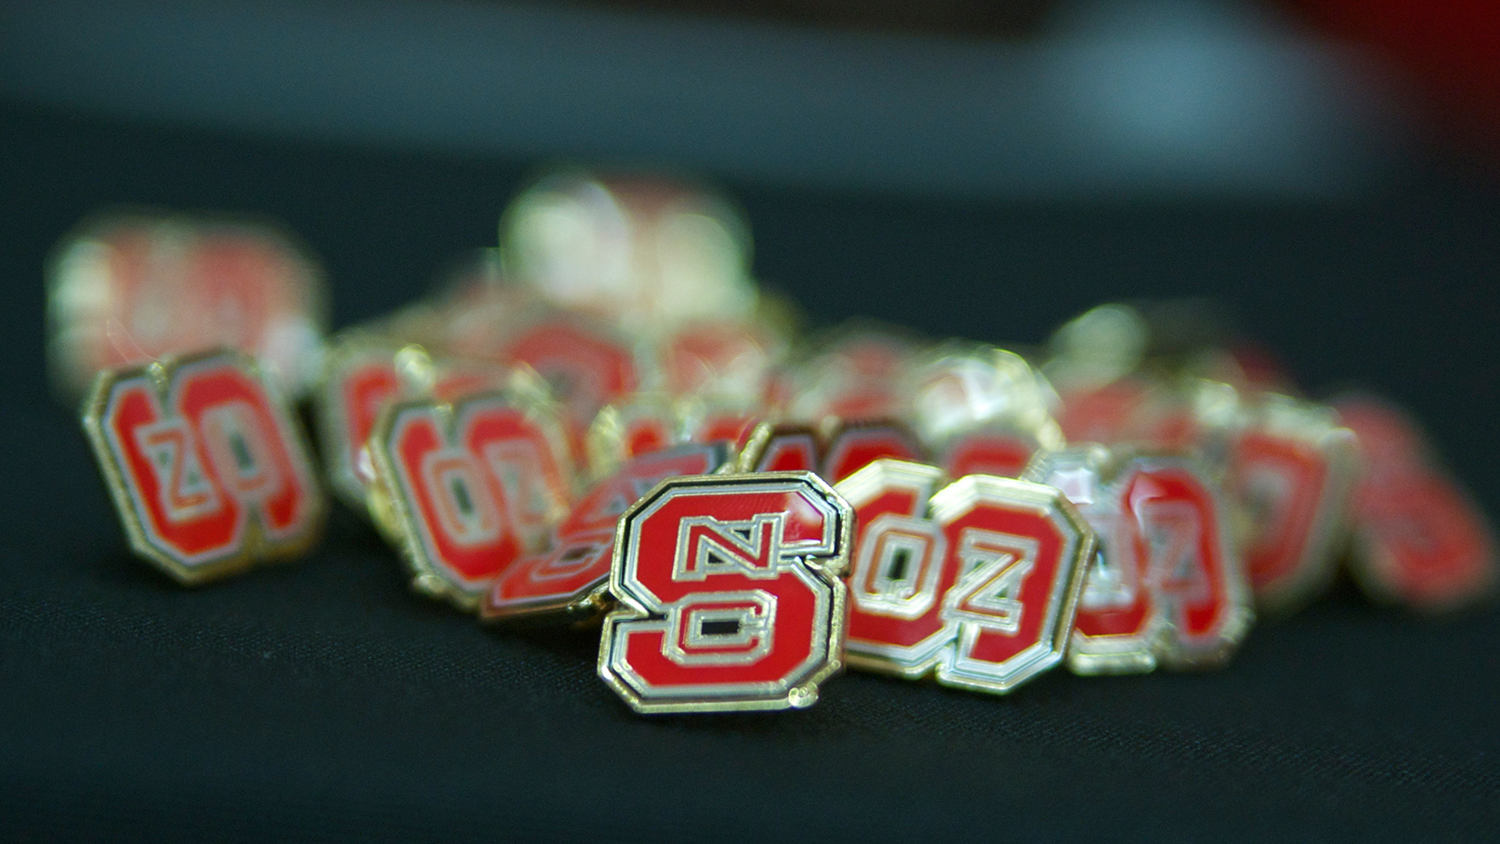 NC State lapel pins